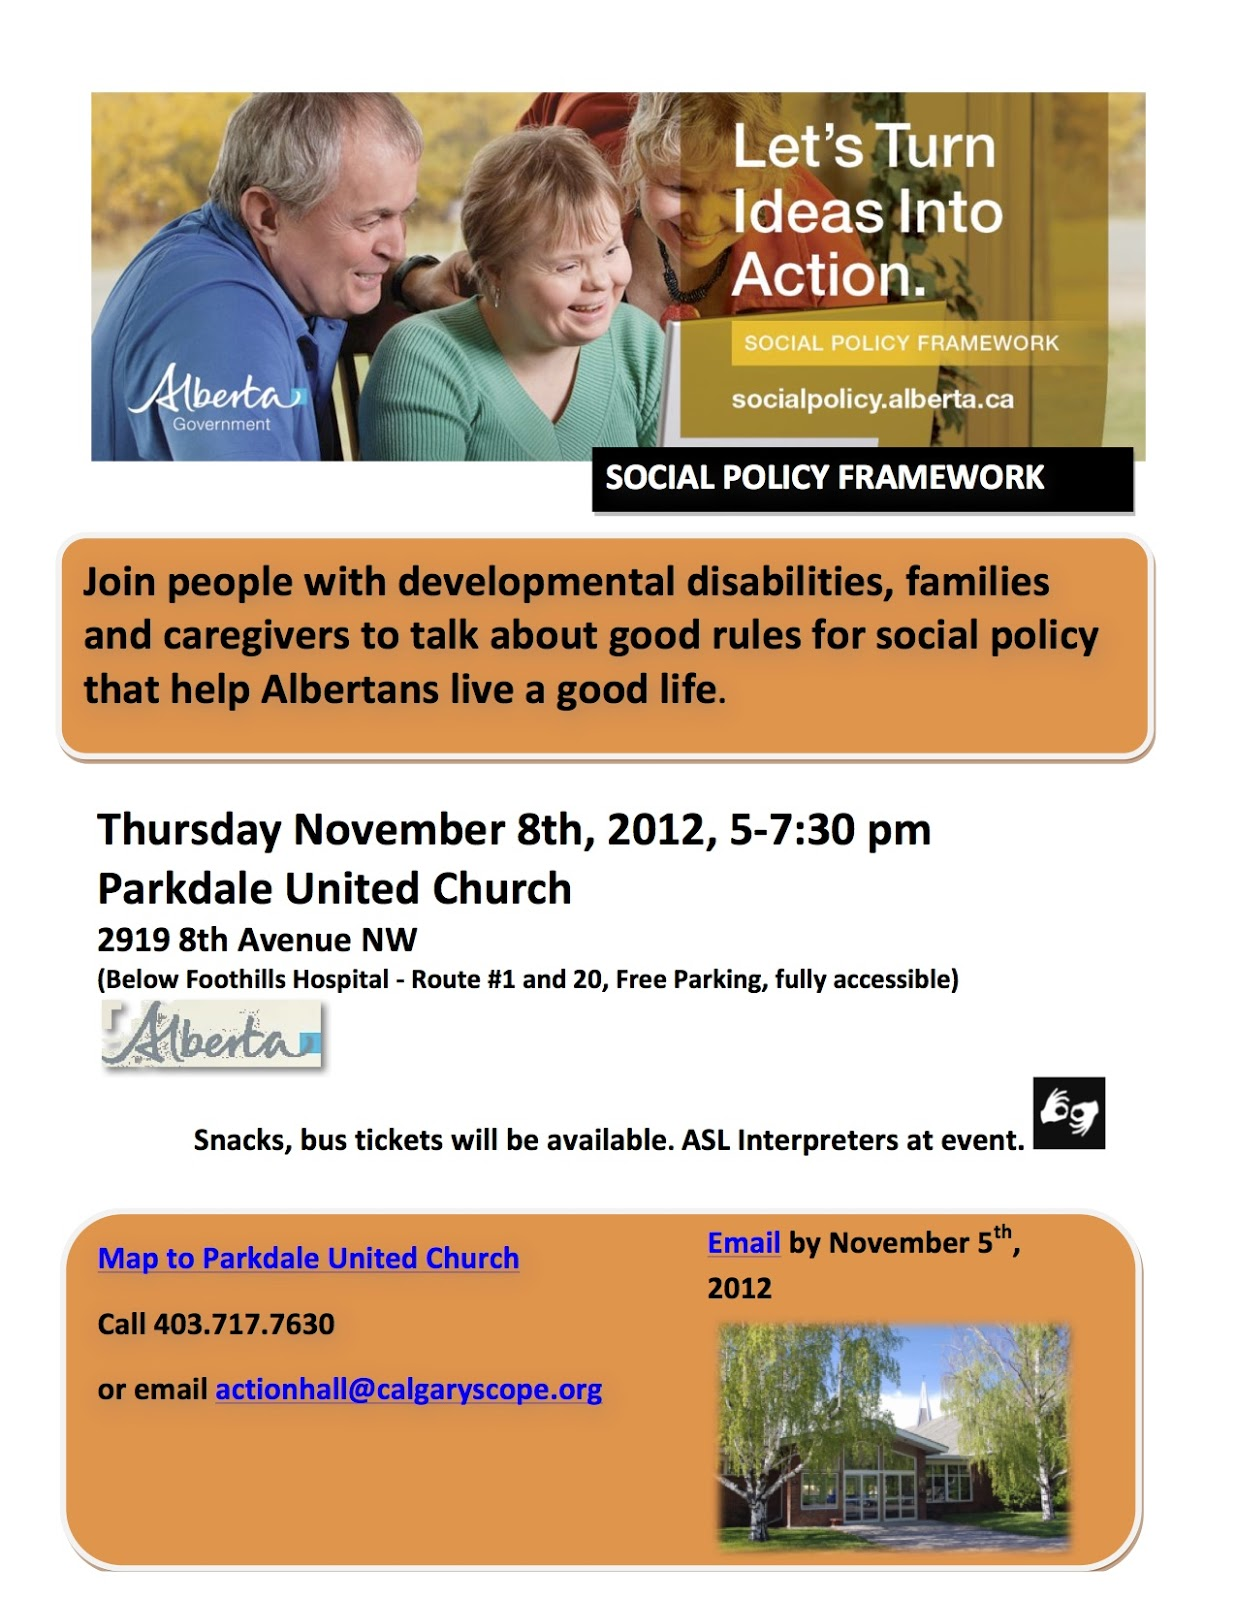 Thursday Nov 8 5-7:30 pm, stage 2 of Social Policy Framework